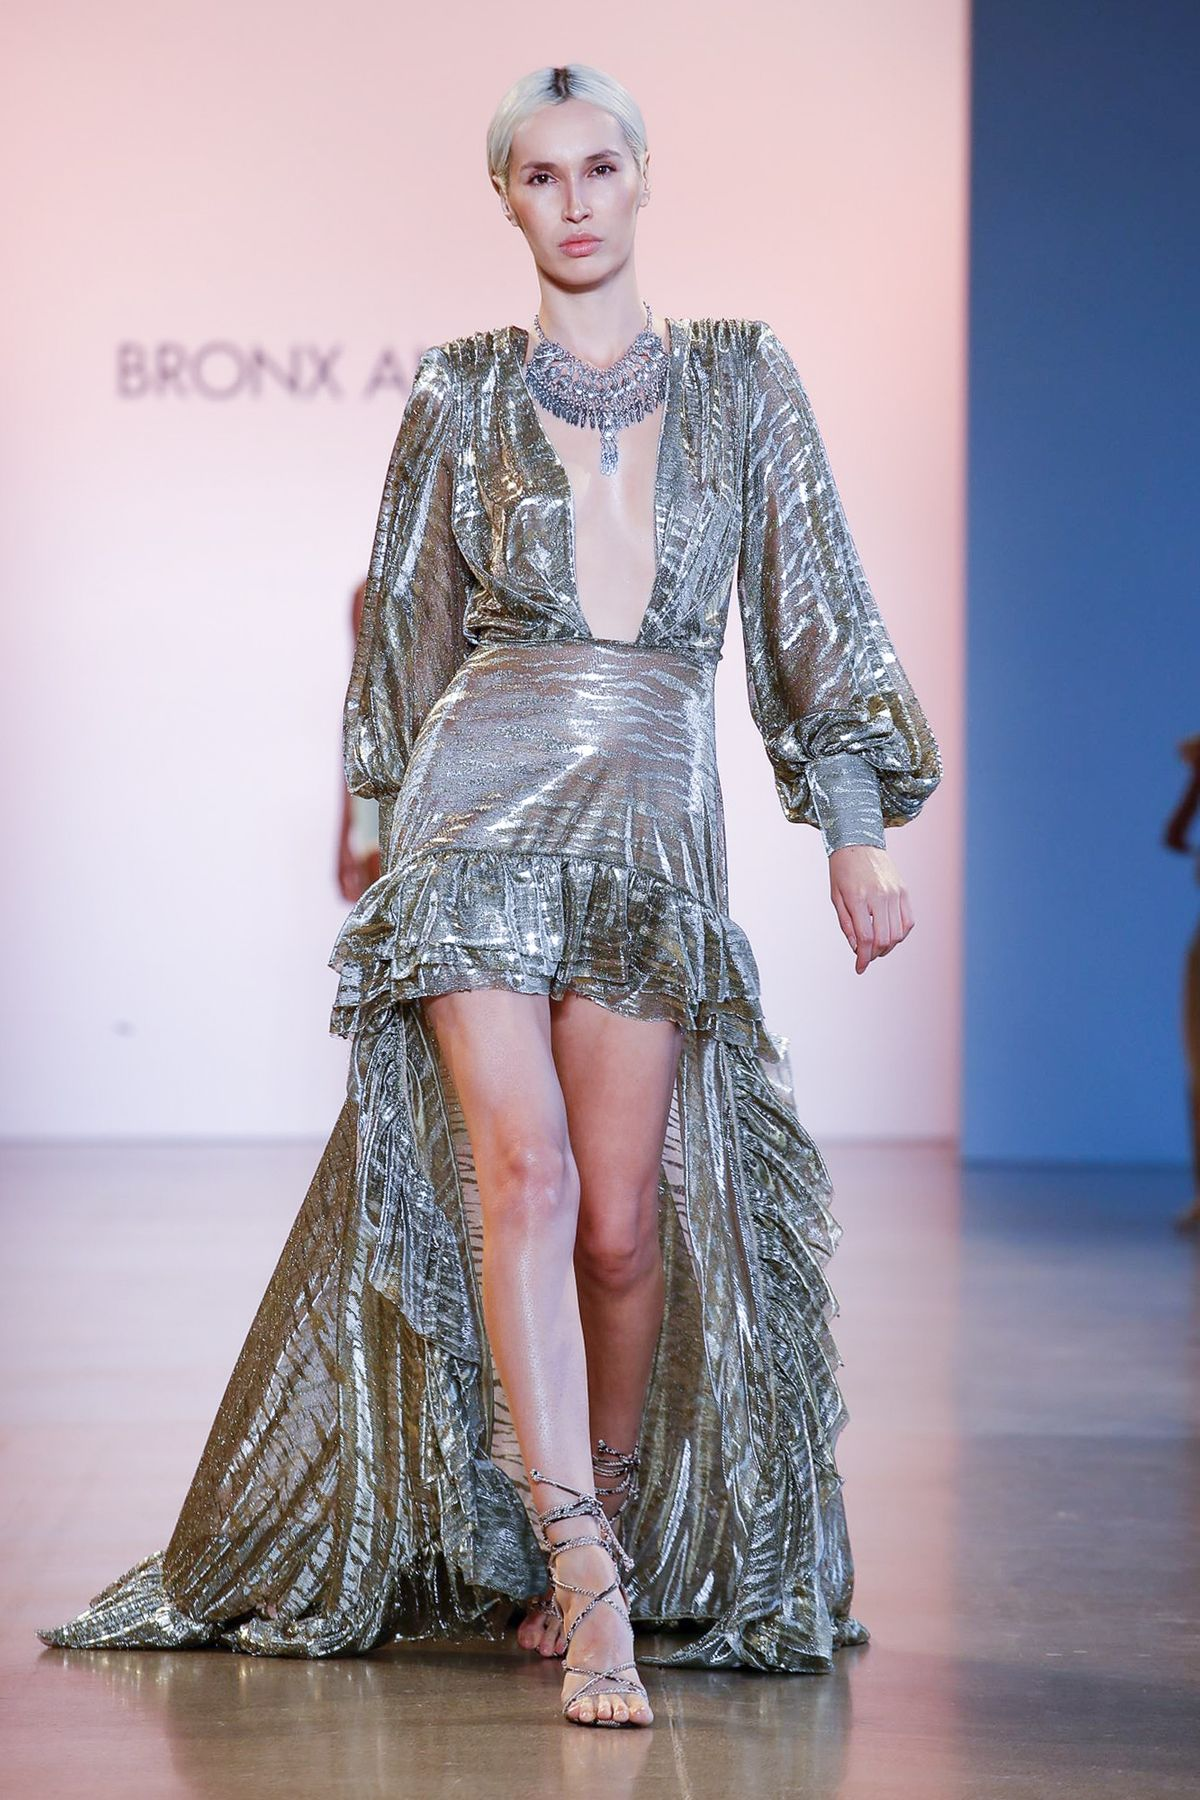 BRONX-AND-BANCO-RTW-SS20-New-York-5685.jpg BRONX AND BANCO Ready To Wear Spring Summer 2020,NYFW, NYFW 2019, New York fashion week 2019, New York fashion week as a blogger, truths about NYFW, fashion week, street style, New York style, outfit ideas, blogger, travel blogger, advice from a blogger, blogging advice, blogging tips, influencer tips, influencer advice, tips from an influencer on New York fashion week, fashion blogger, Jennifer woman, Red Soles and Red Wine